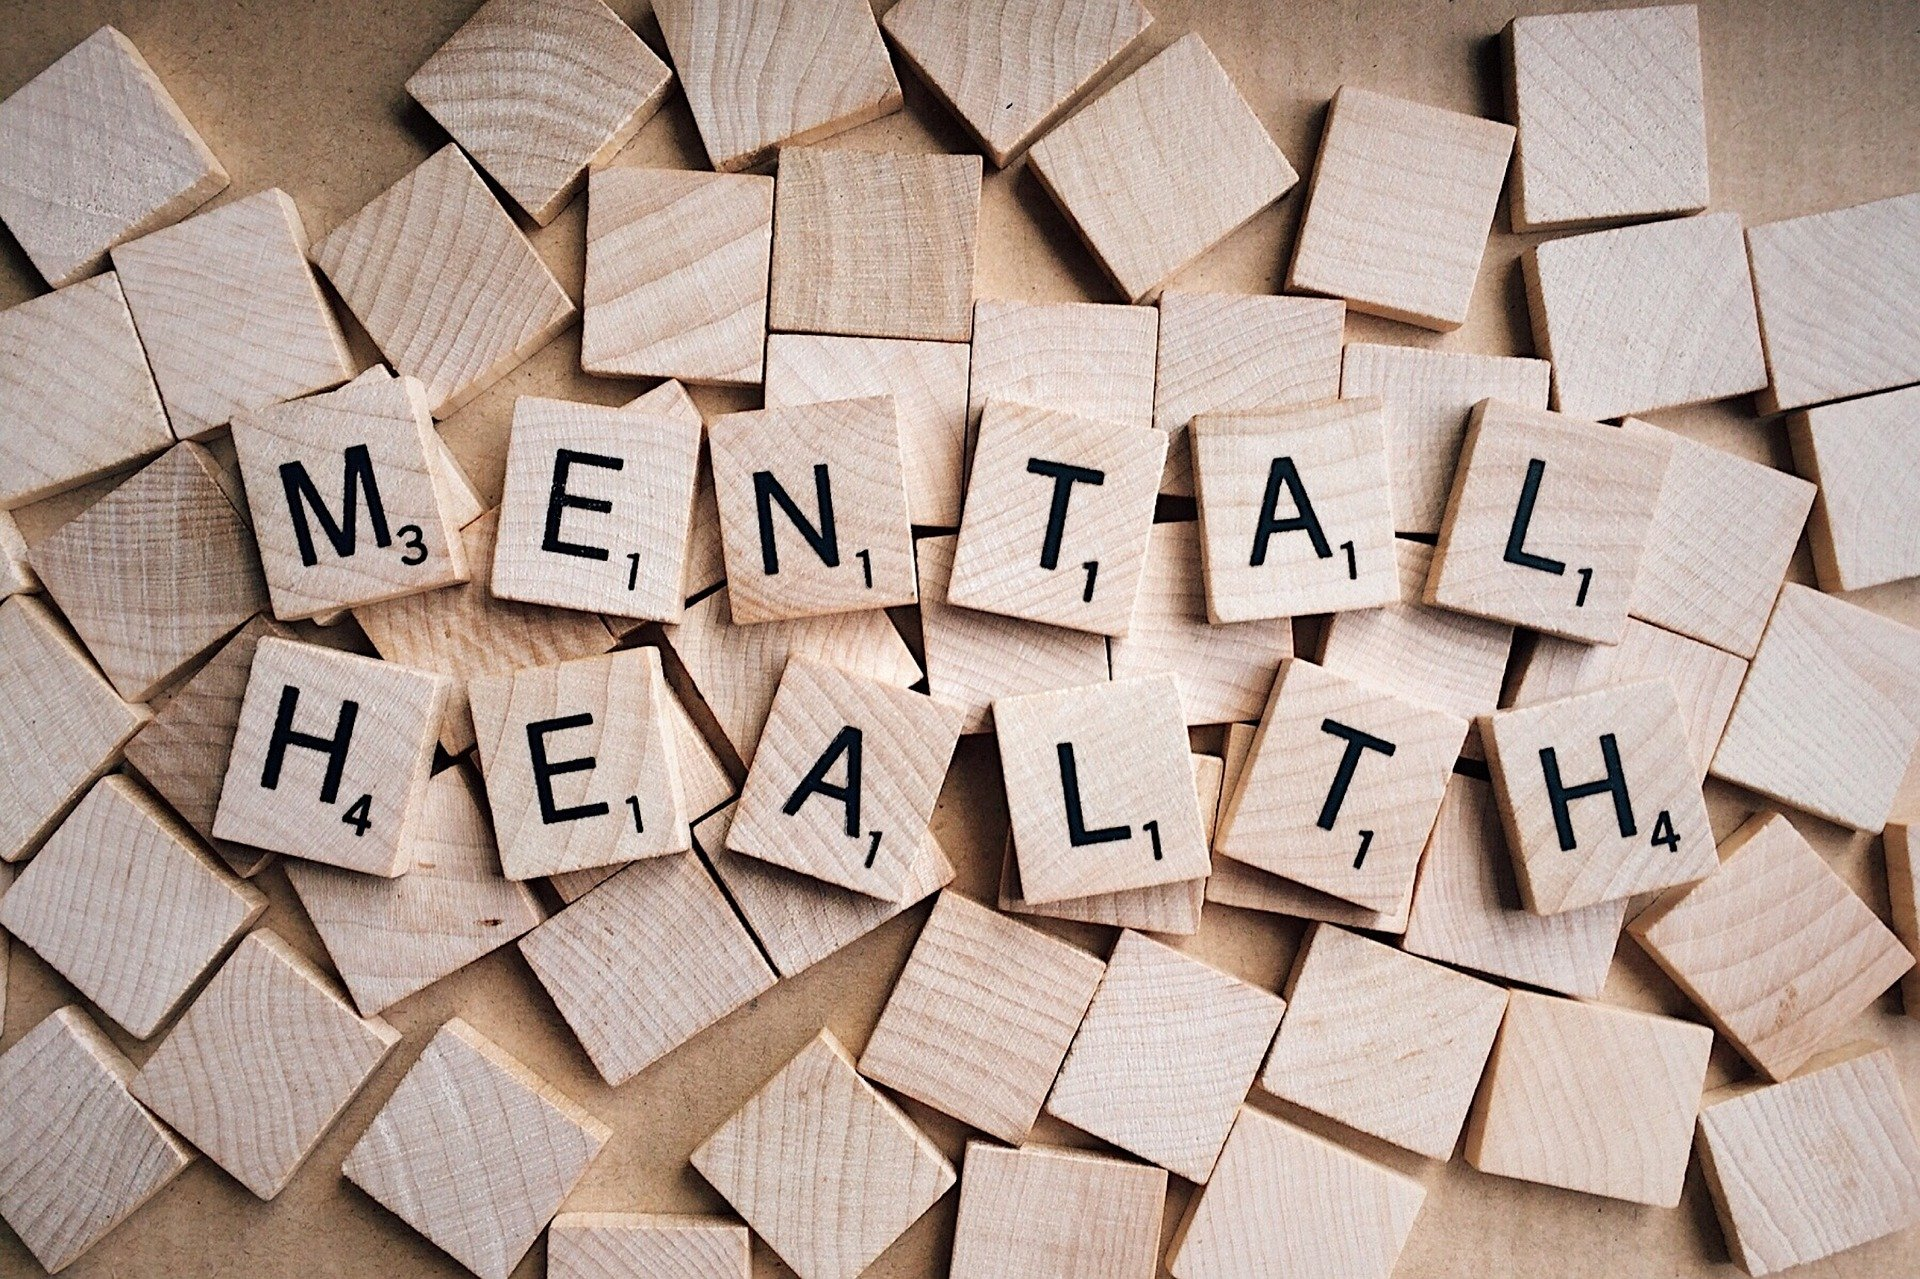 More Mental Health Challenges In Nigeria, Says An Expert